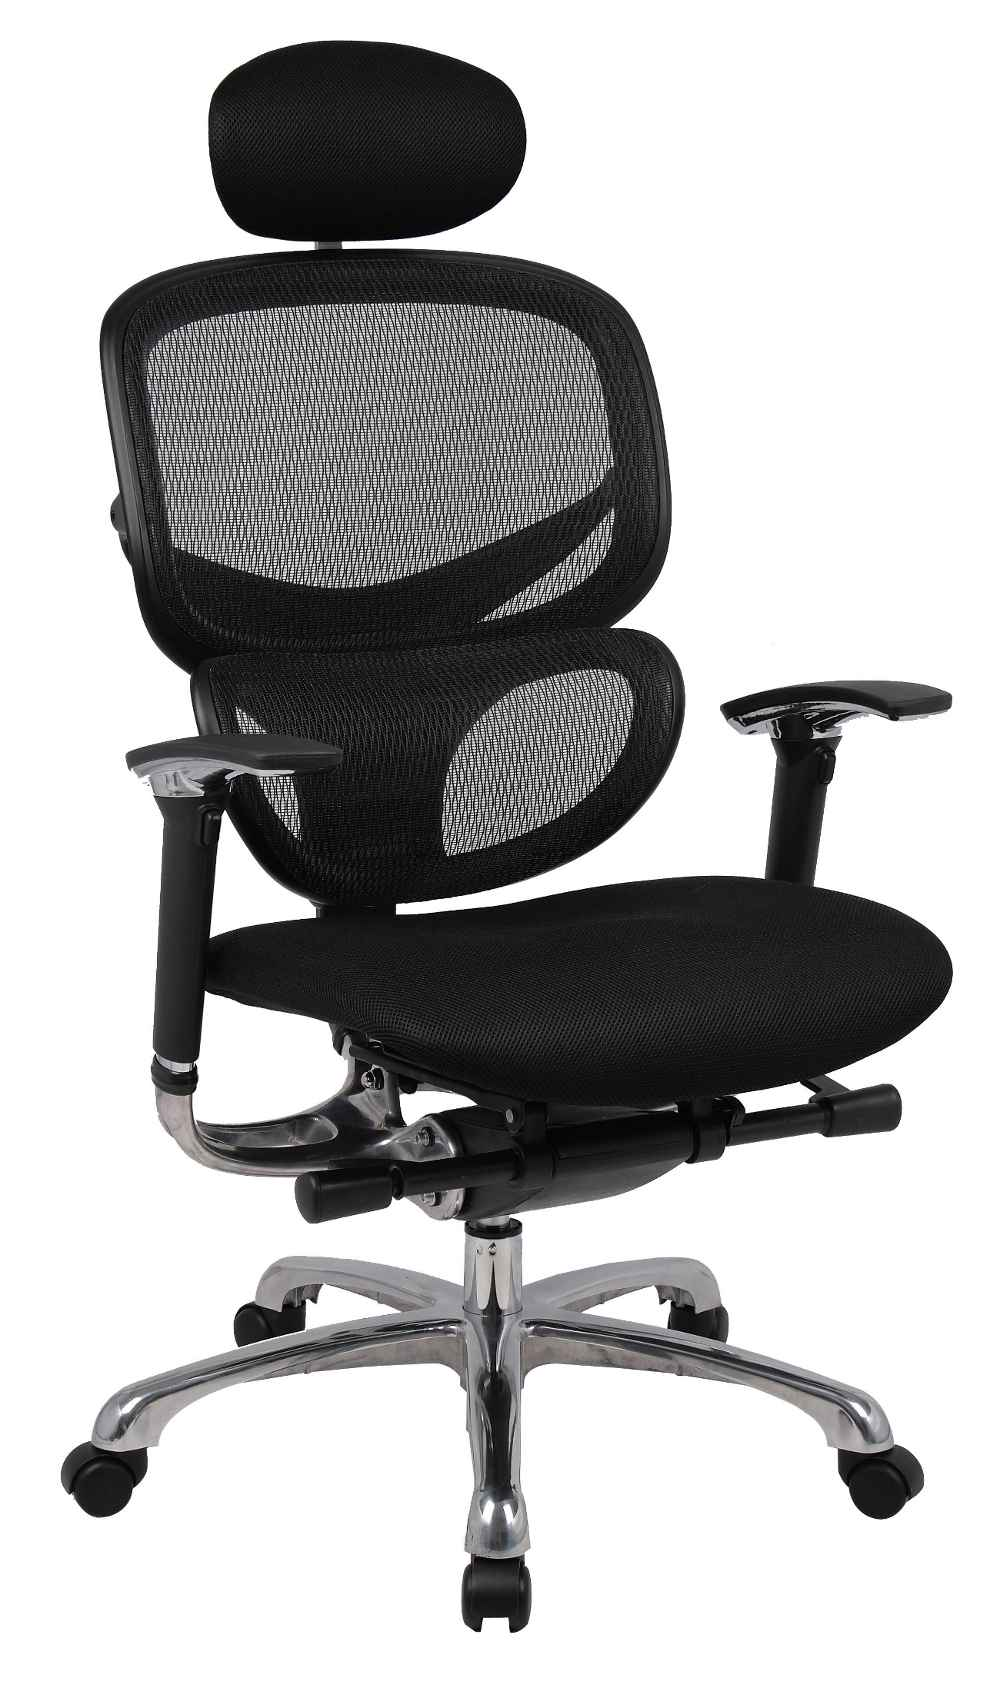 Handbury Mesh Office Chair with Headrest